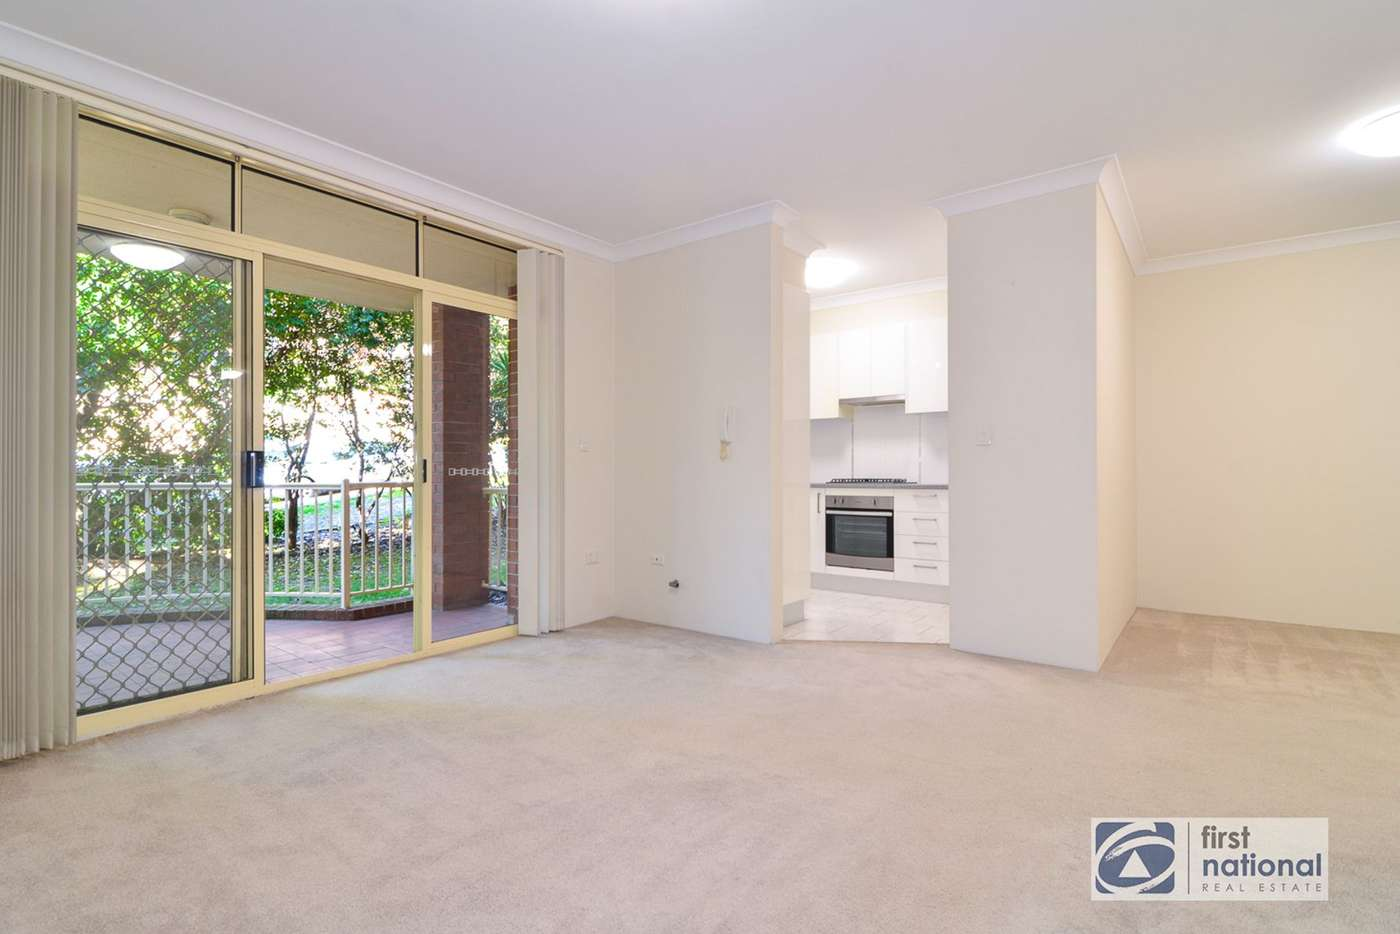 Fifth view of Homely apartment listing, 2/33-37 Linda Street, Hornsby NSW 2077